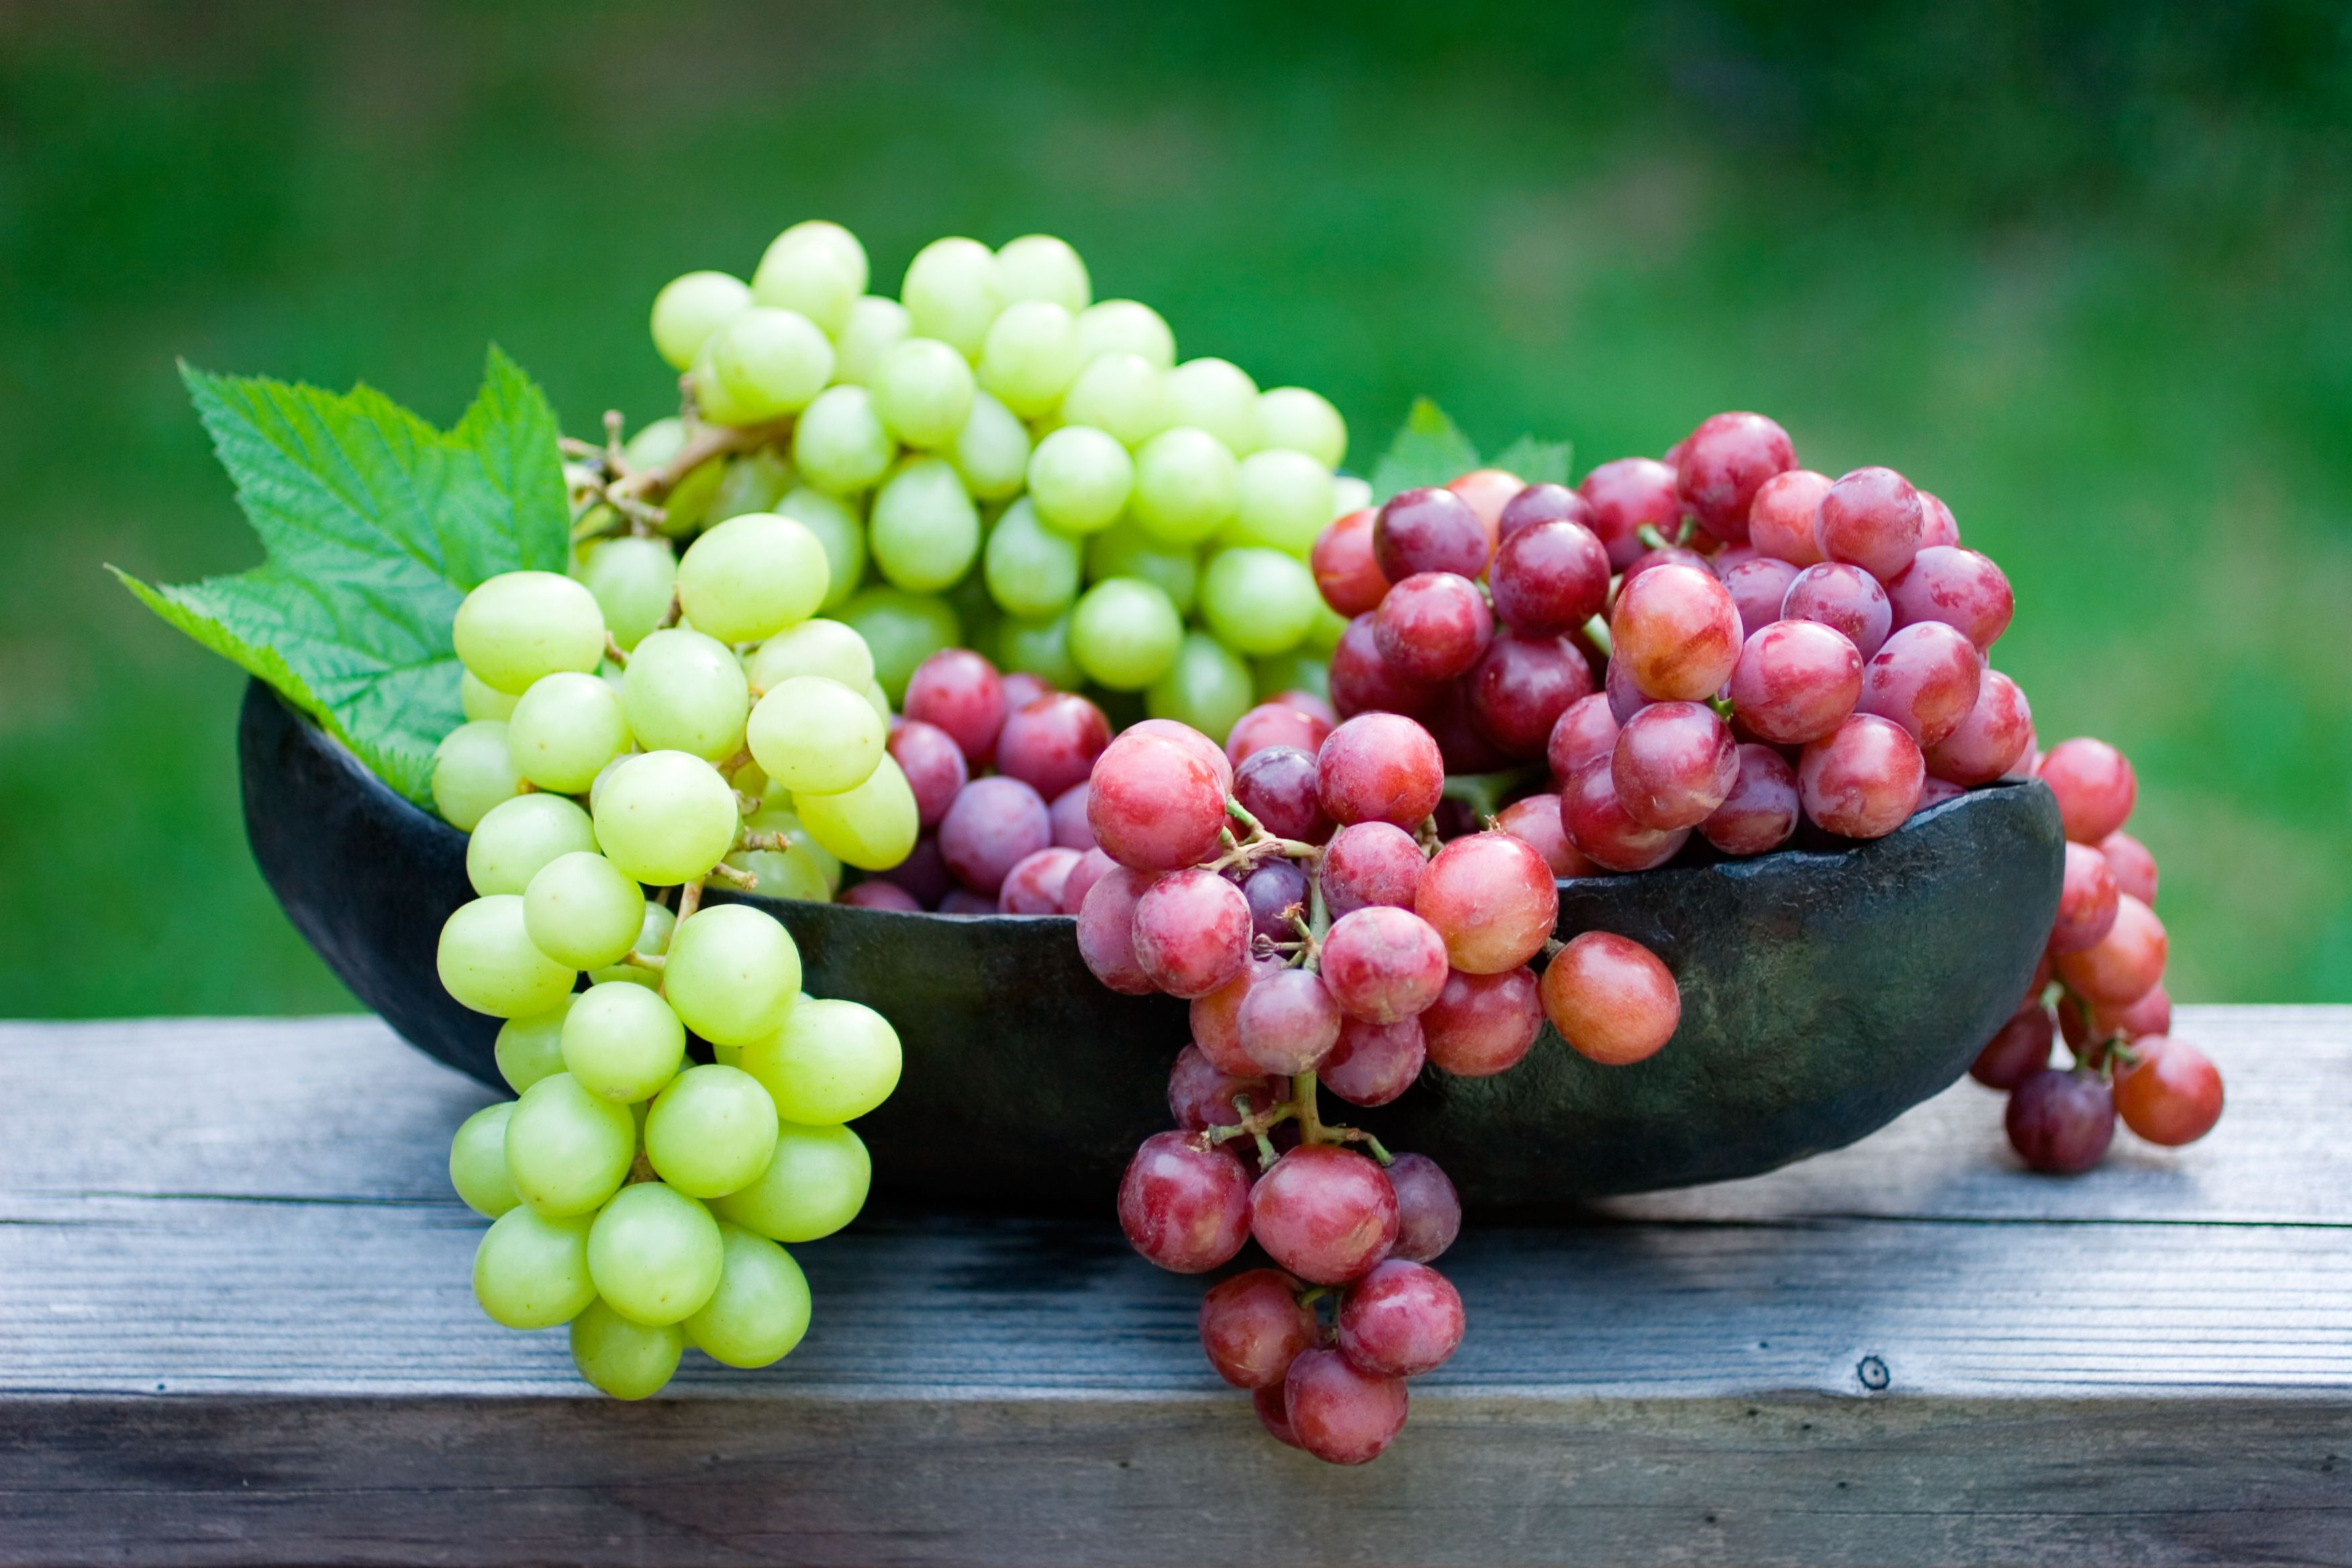 What is processed by grapes